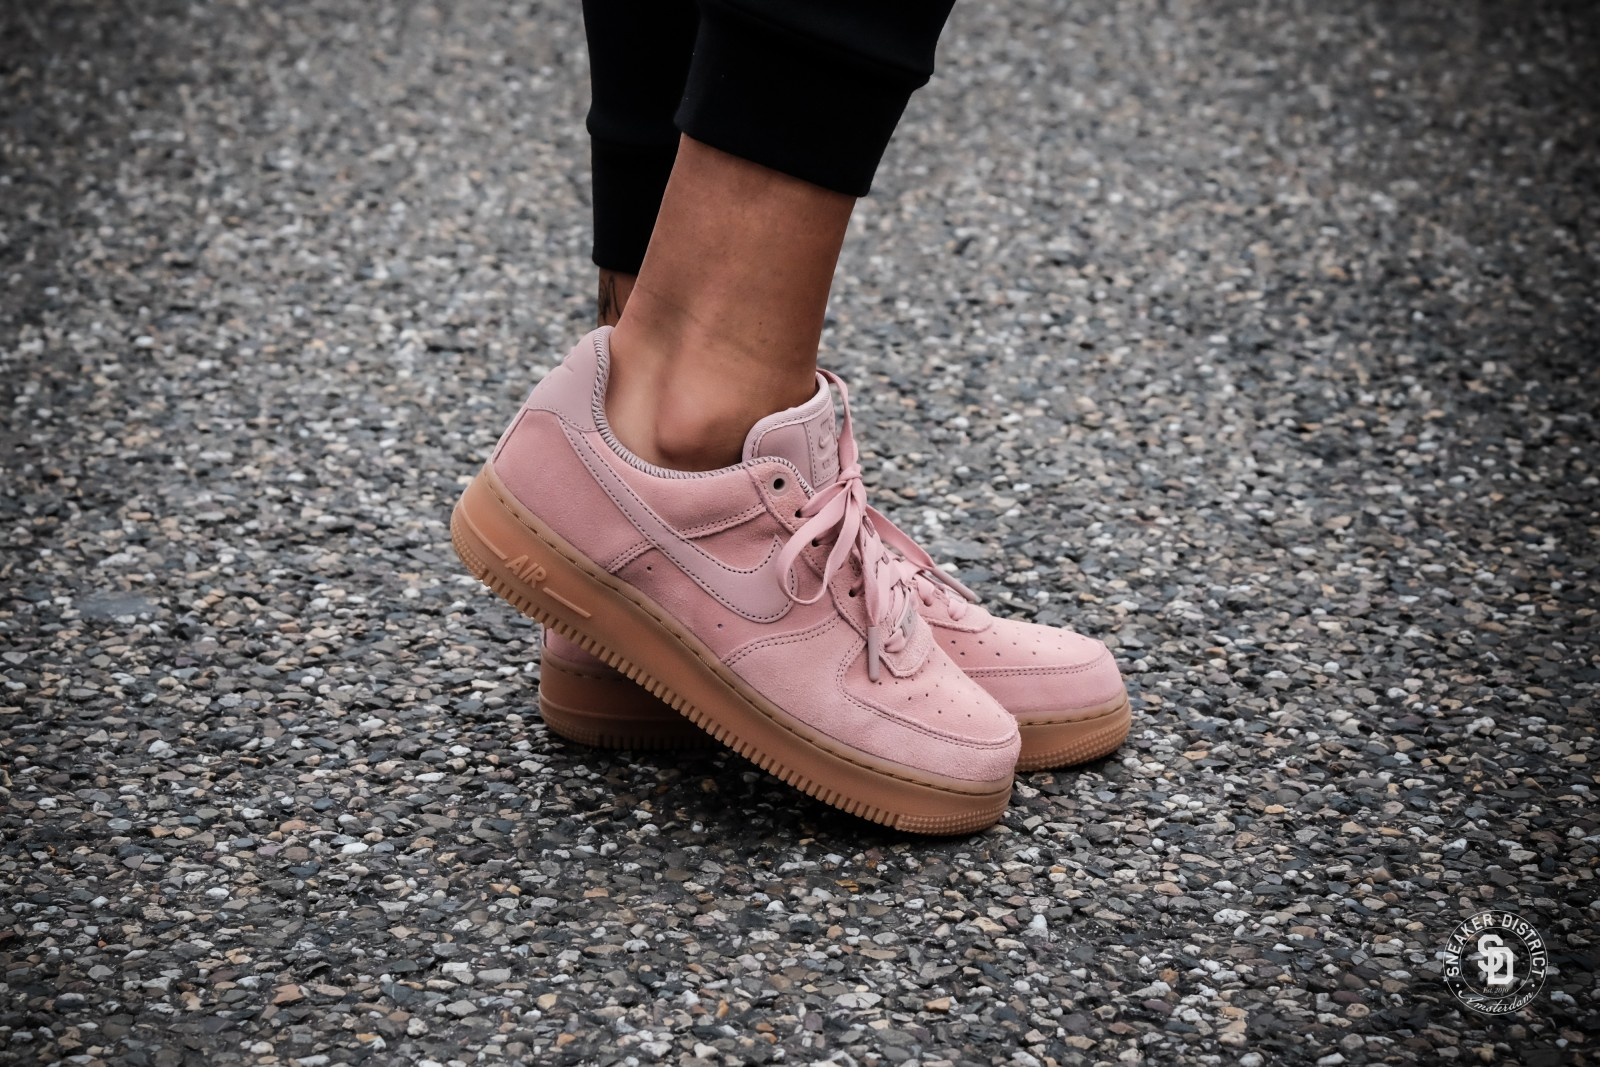 Nike Wmns Air Force 1 '07 SE Particle Pink | AA0287 600